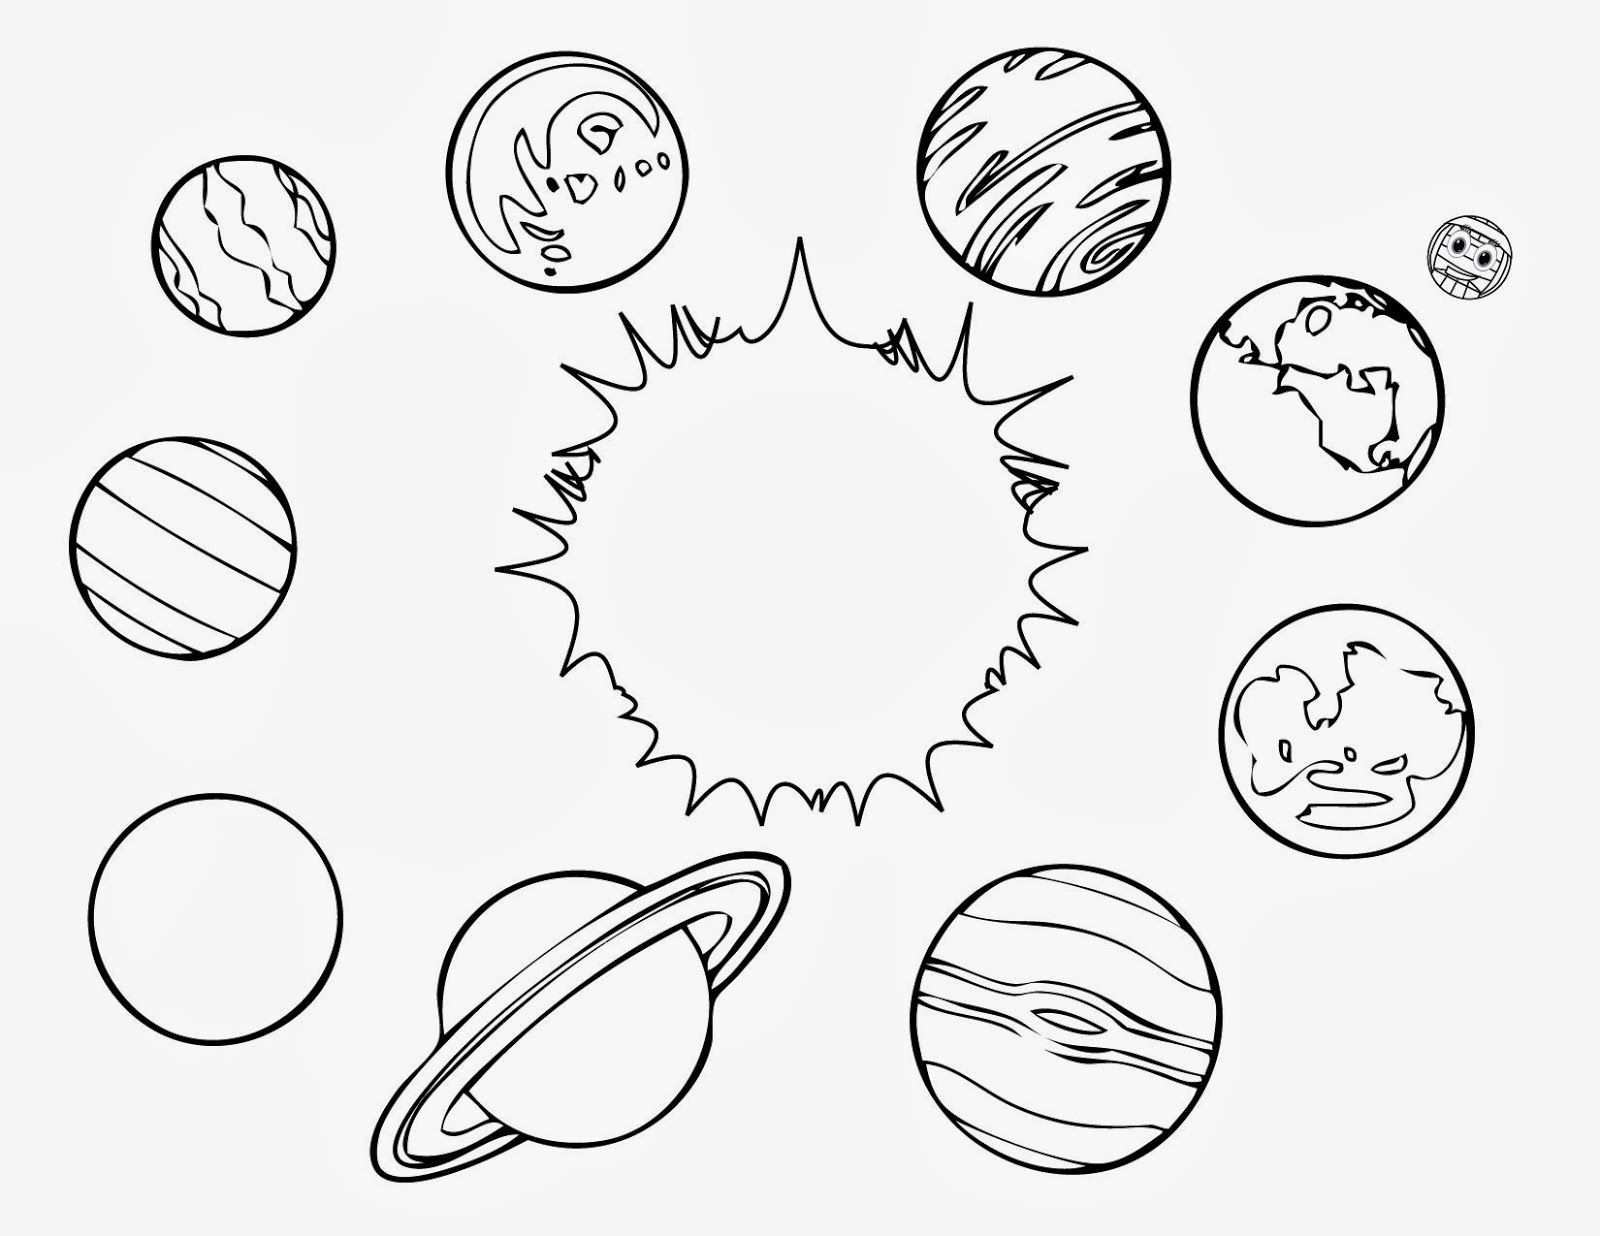 Planets Coloring Pages For Kids Printable Rapunzel Coloring Pages Solar System Coloring Pages Space Coloring Pages Planet Coloring Pages